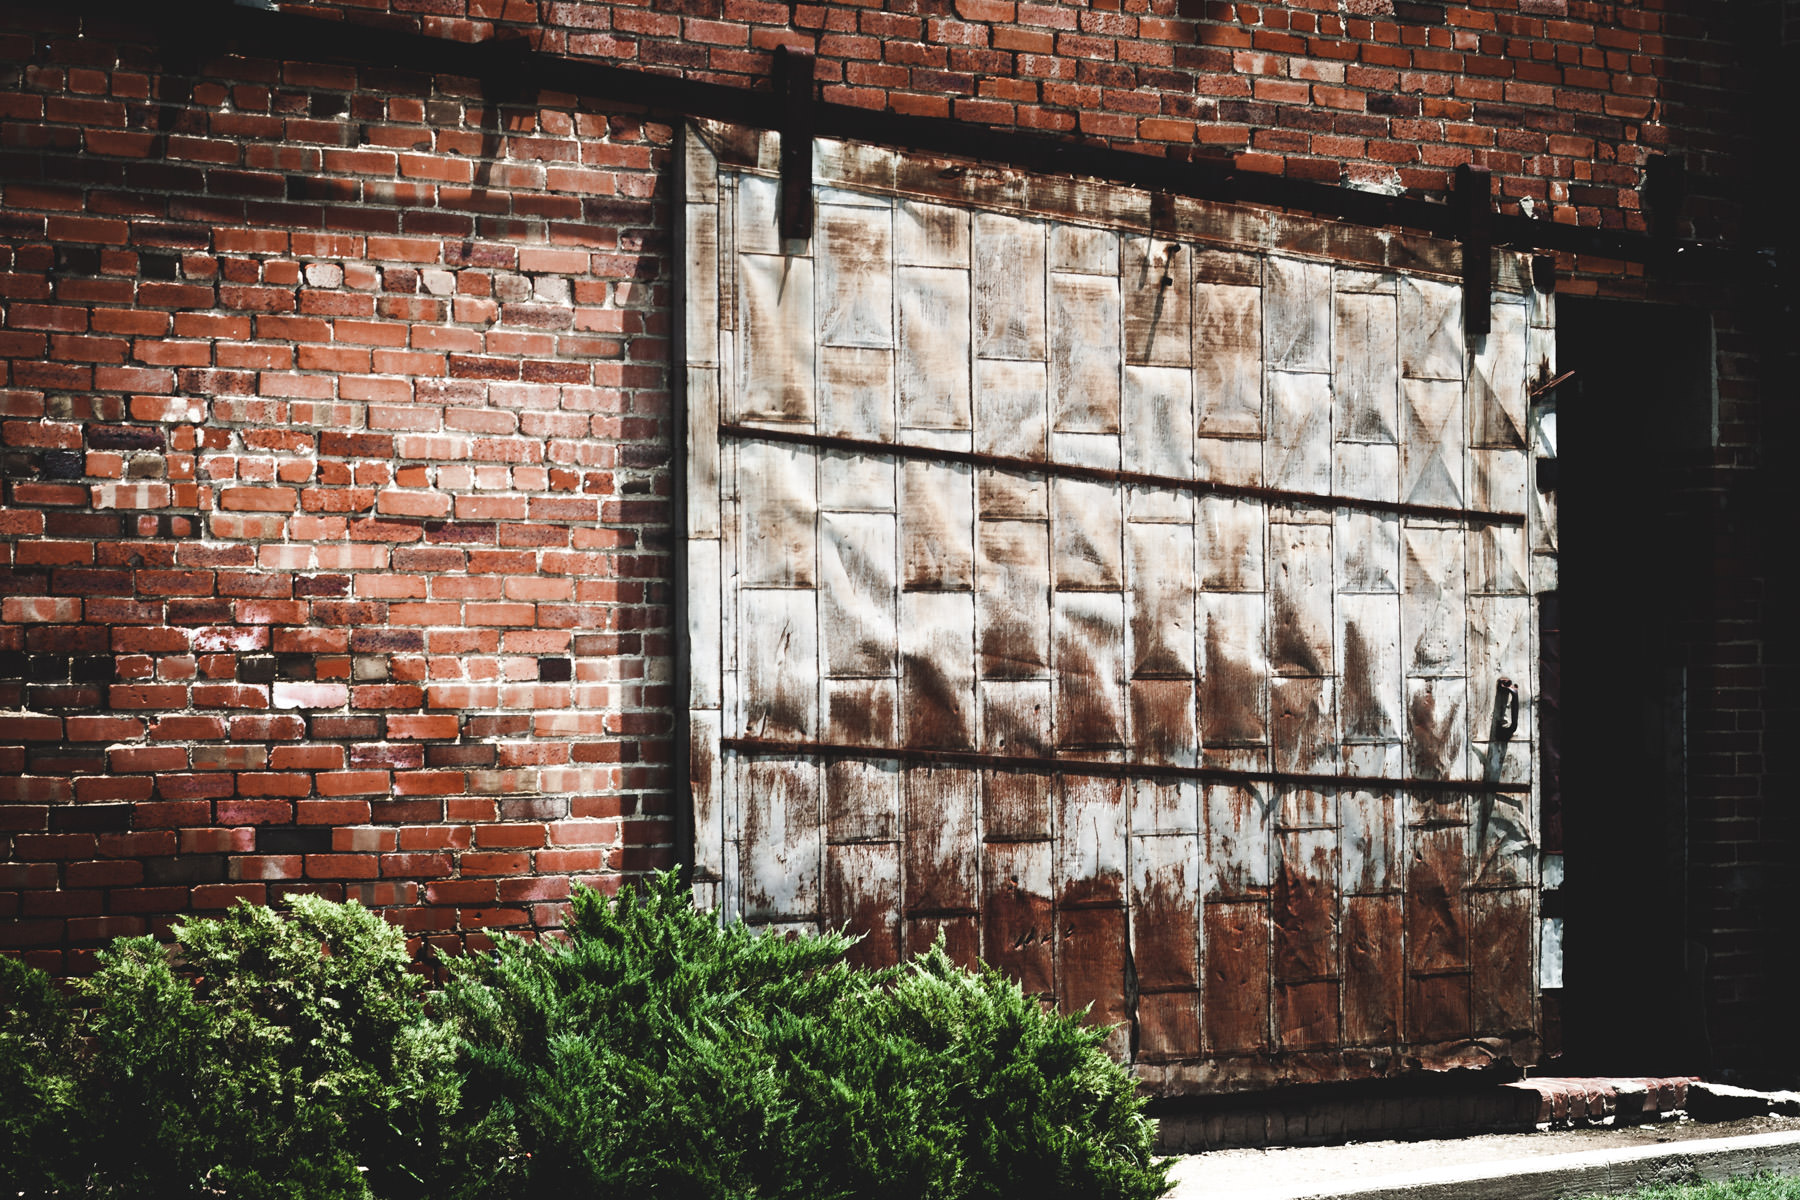 A warehouse door in the Fort Worth Stockyards.